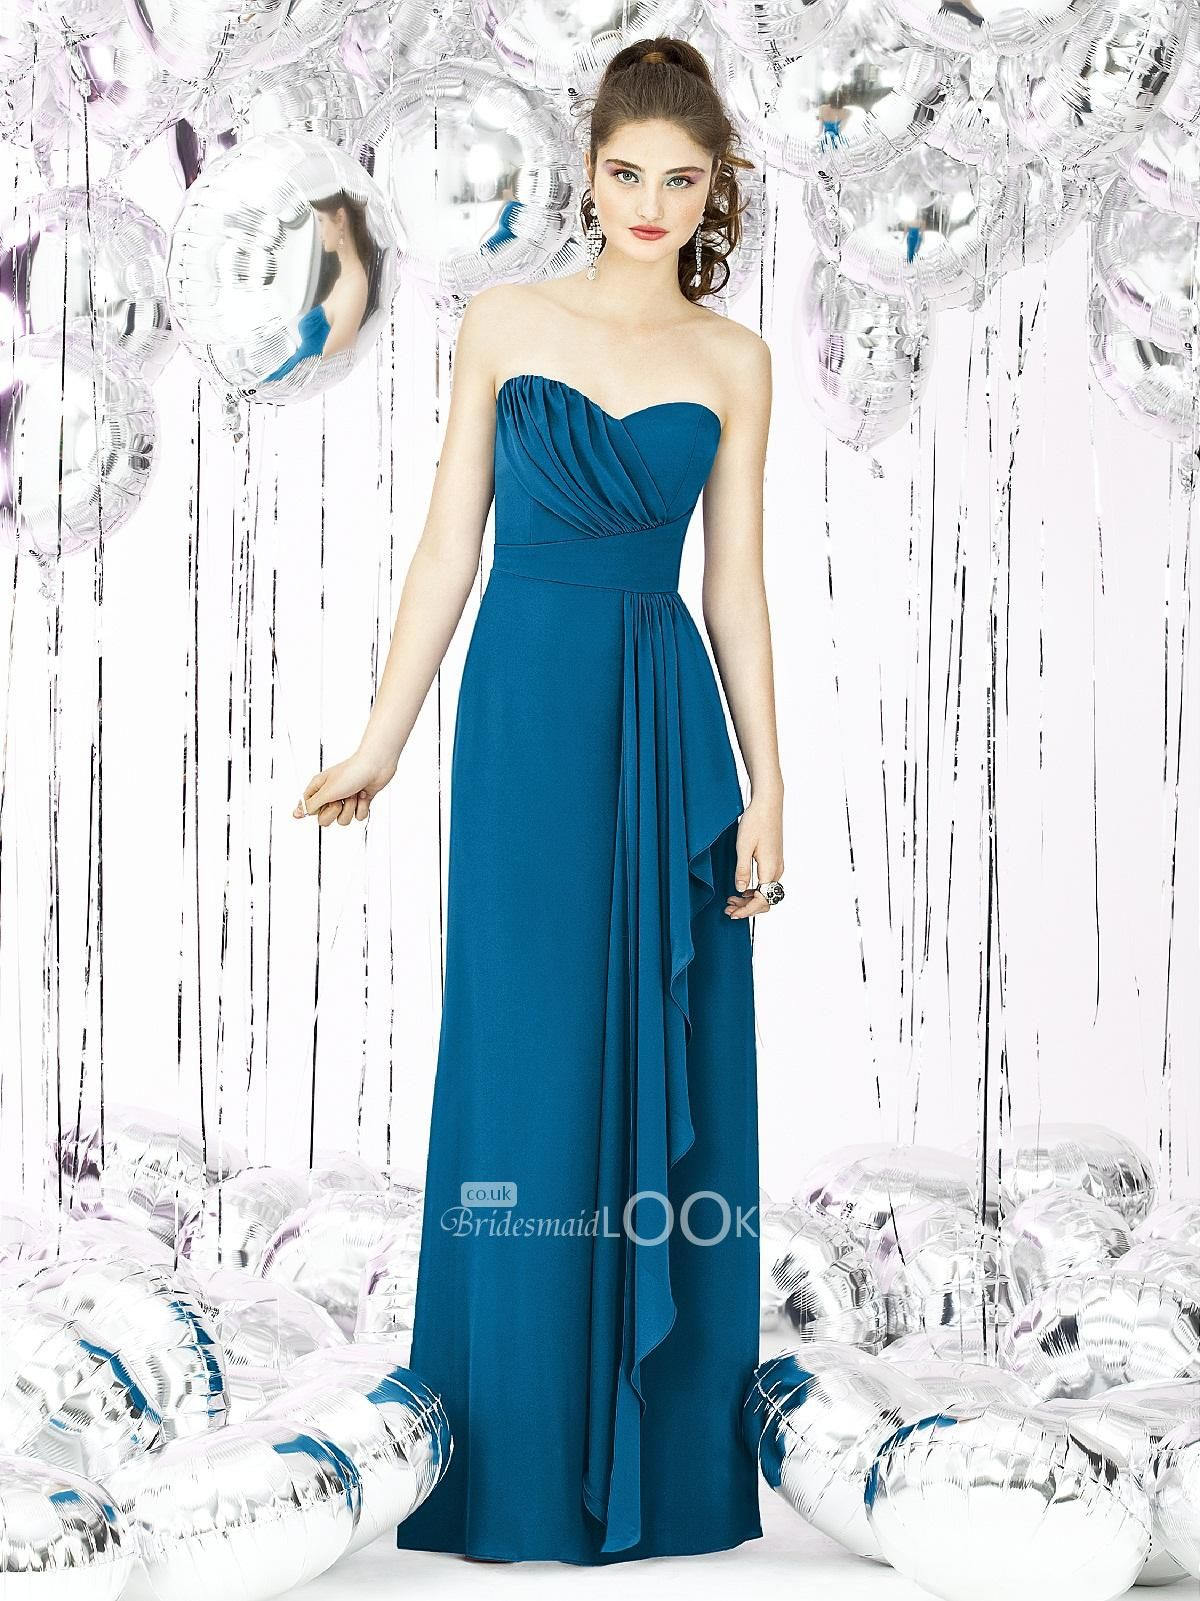 Blue+Bridesmaid+Dresses | ... Length Strapless Ocean Blue Bridesmaid ...